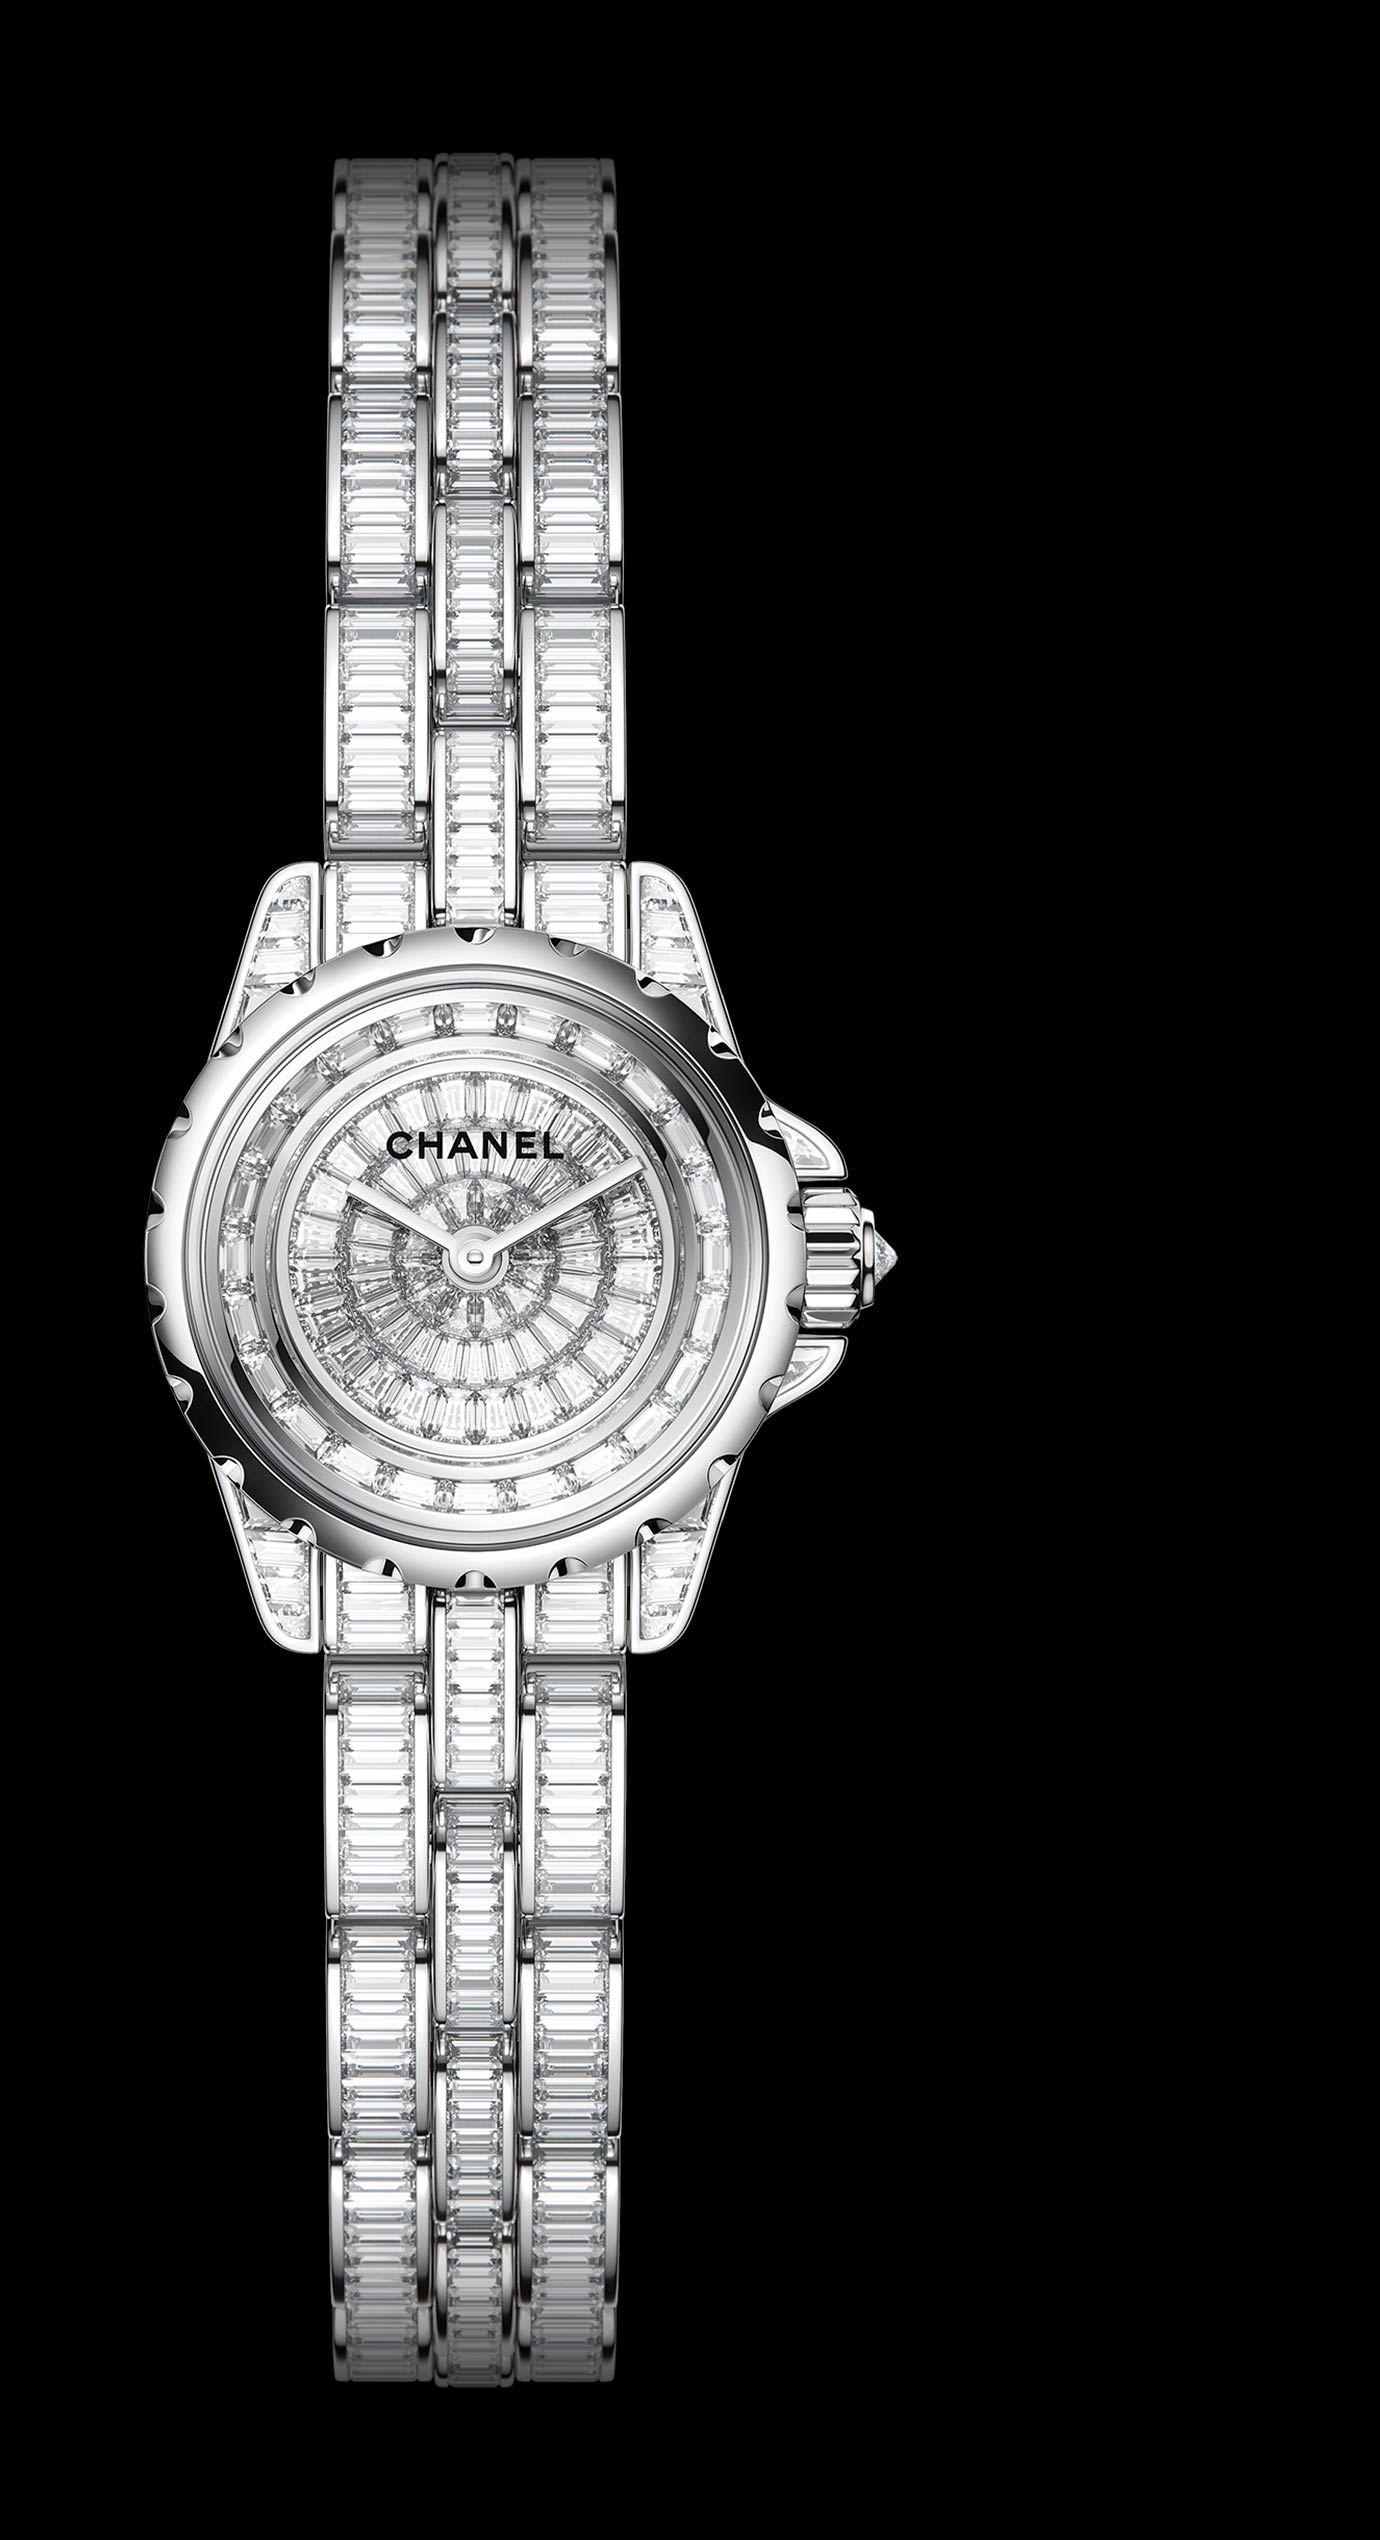 J12 High Jewelry in white gold, case, dial, bezel and bracelet set with baguette-cut diamonds and cognac sapphires. - Enlarged view